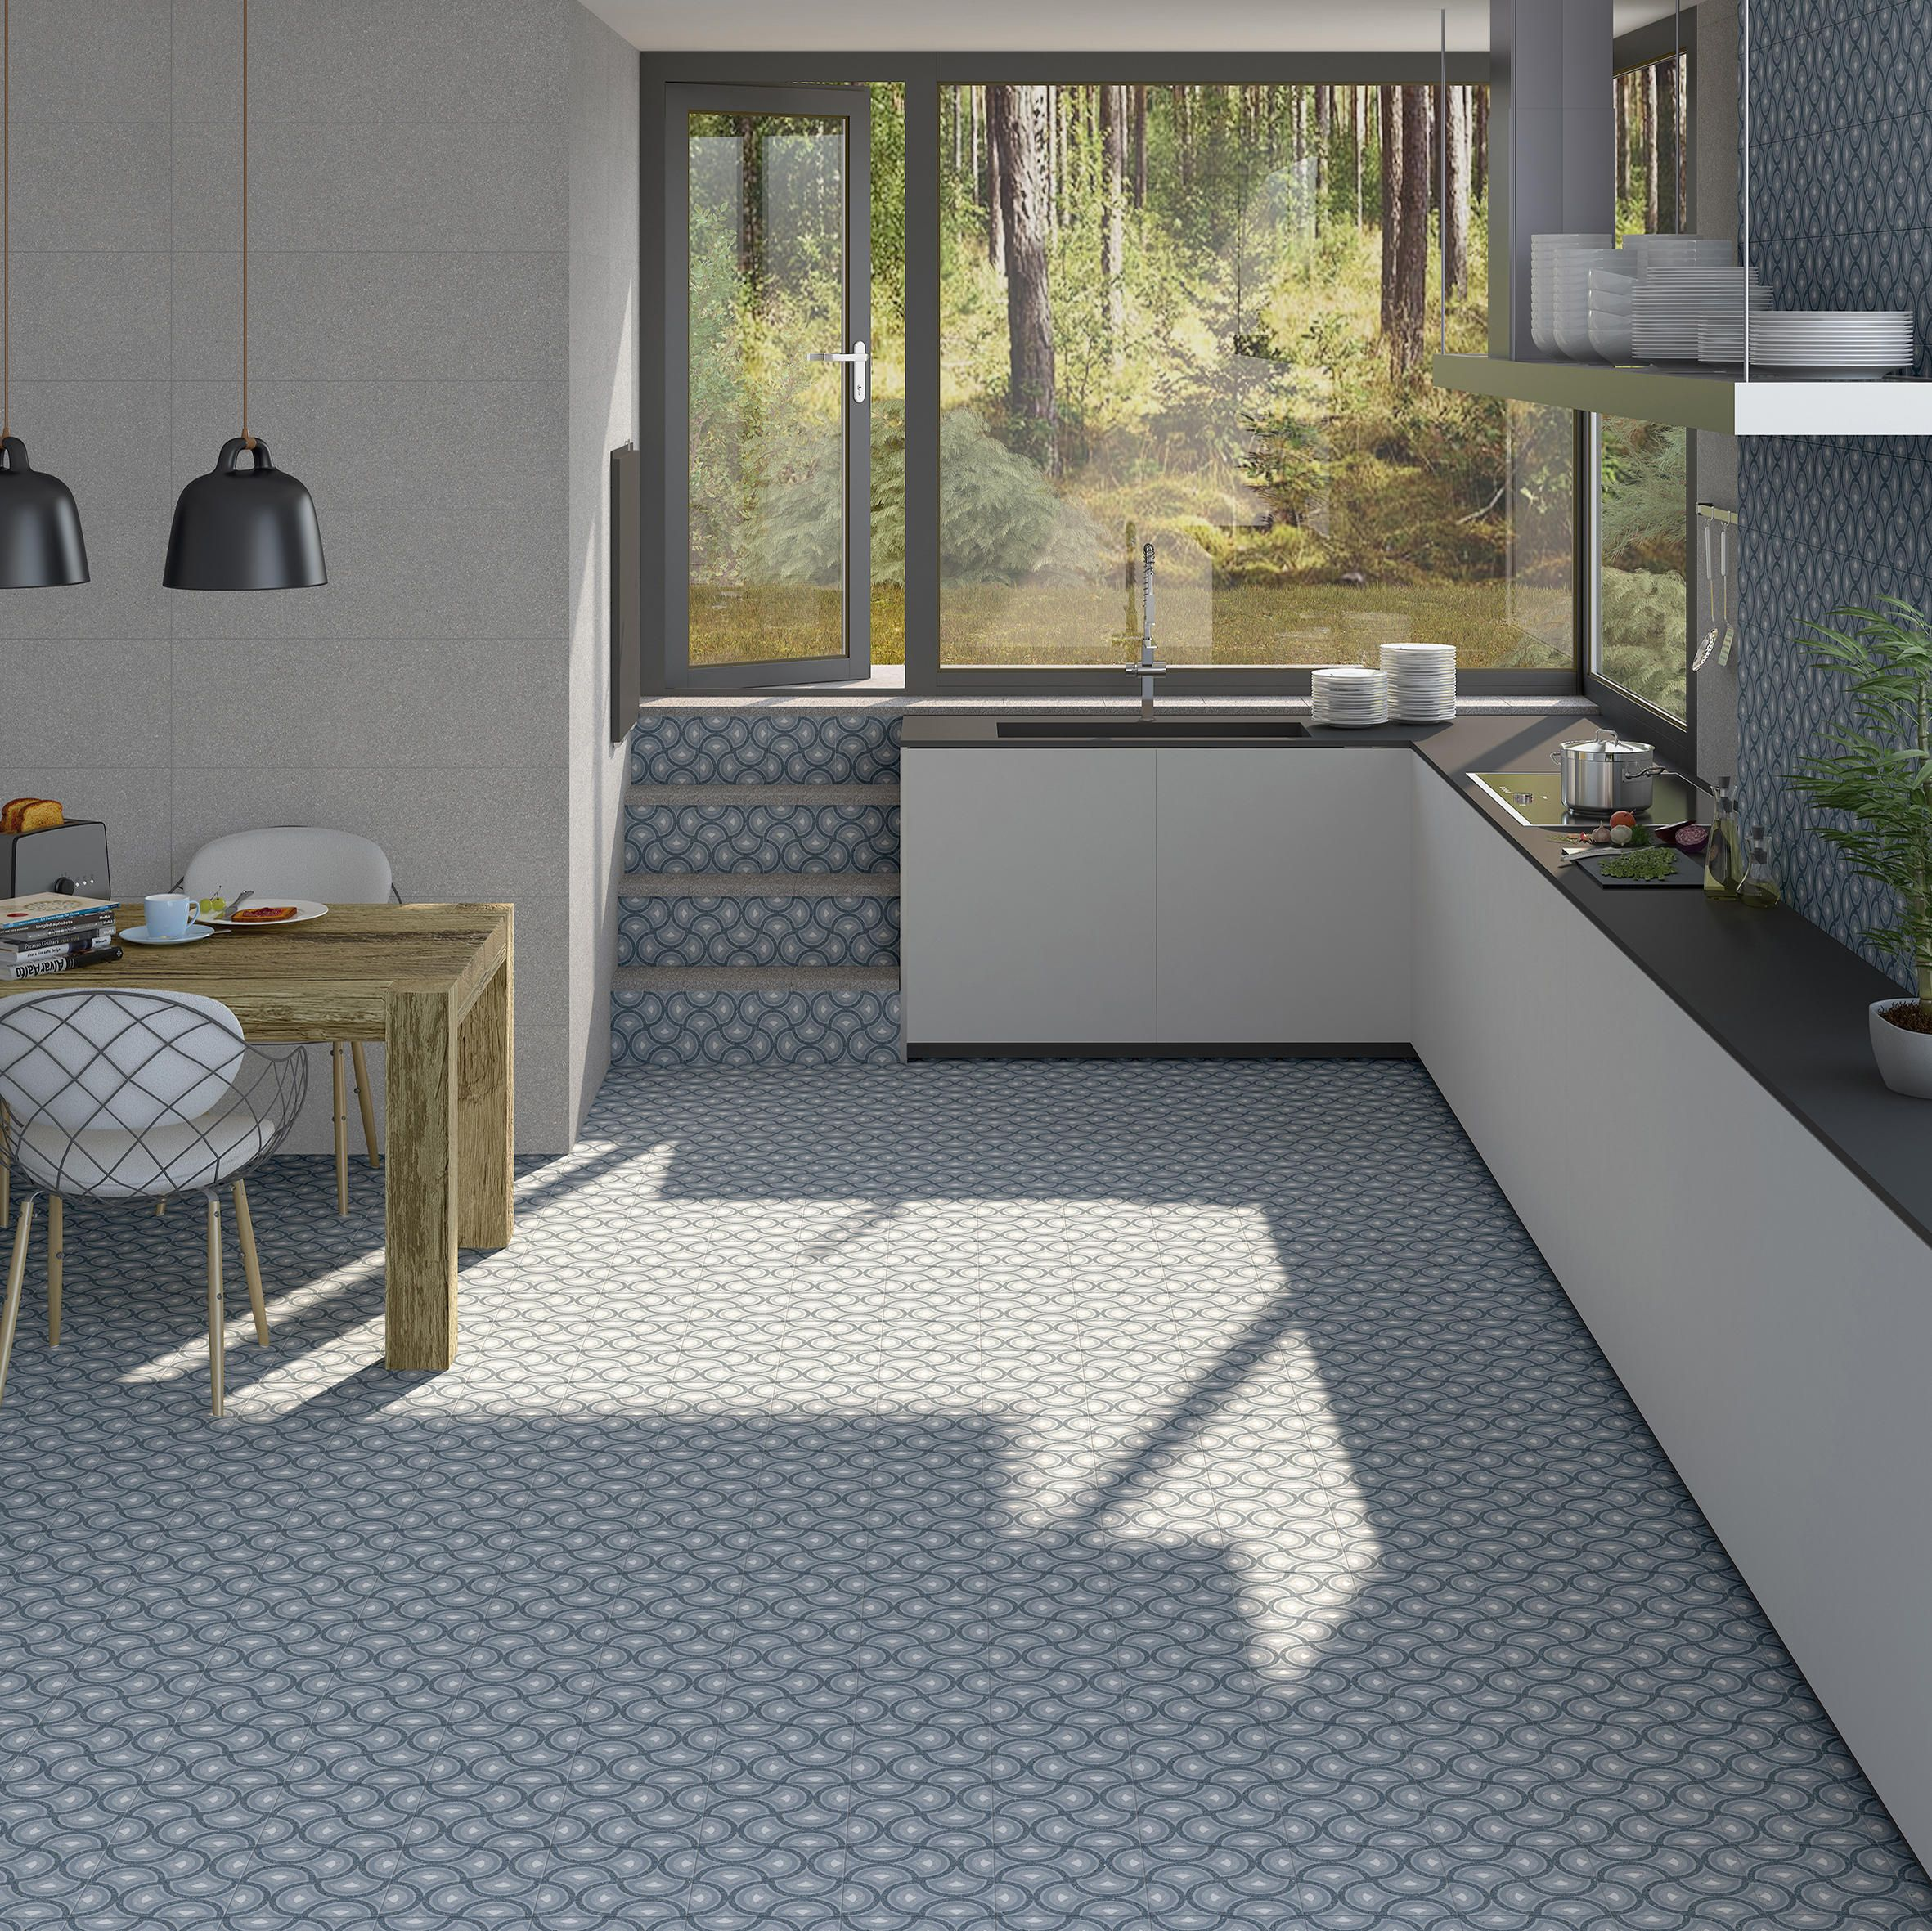 Benaco Pigneto Nube Designer Floor Tiles From Vives Ceramica